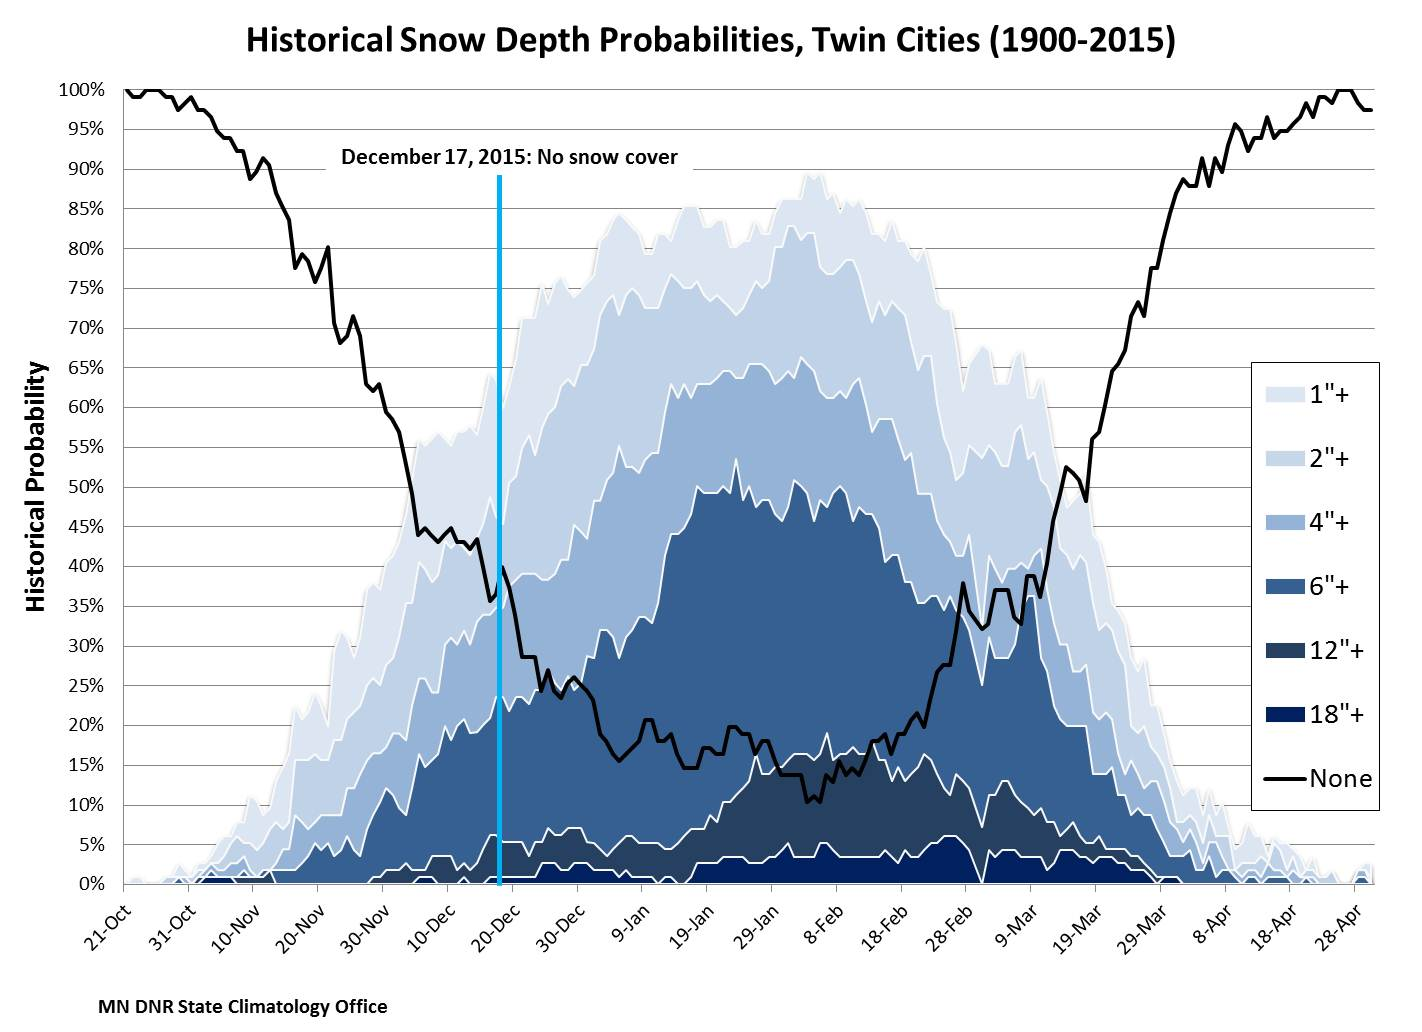 snow depth probabilities at MSP